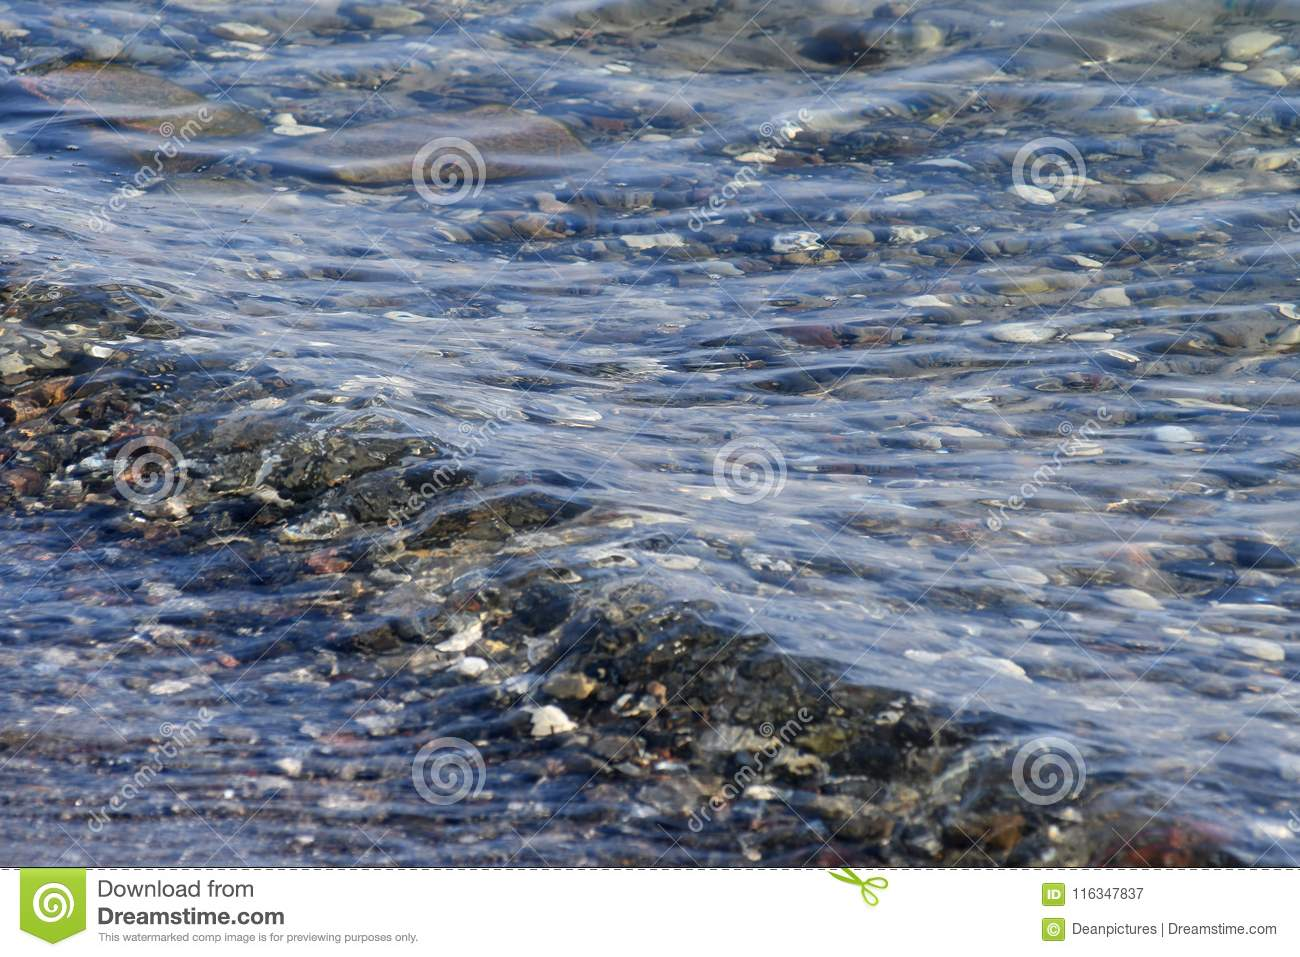 Amager Beach Park danish oreseund shore stock image. image of oresund - 116347837